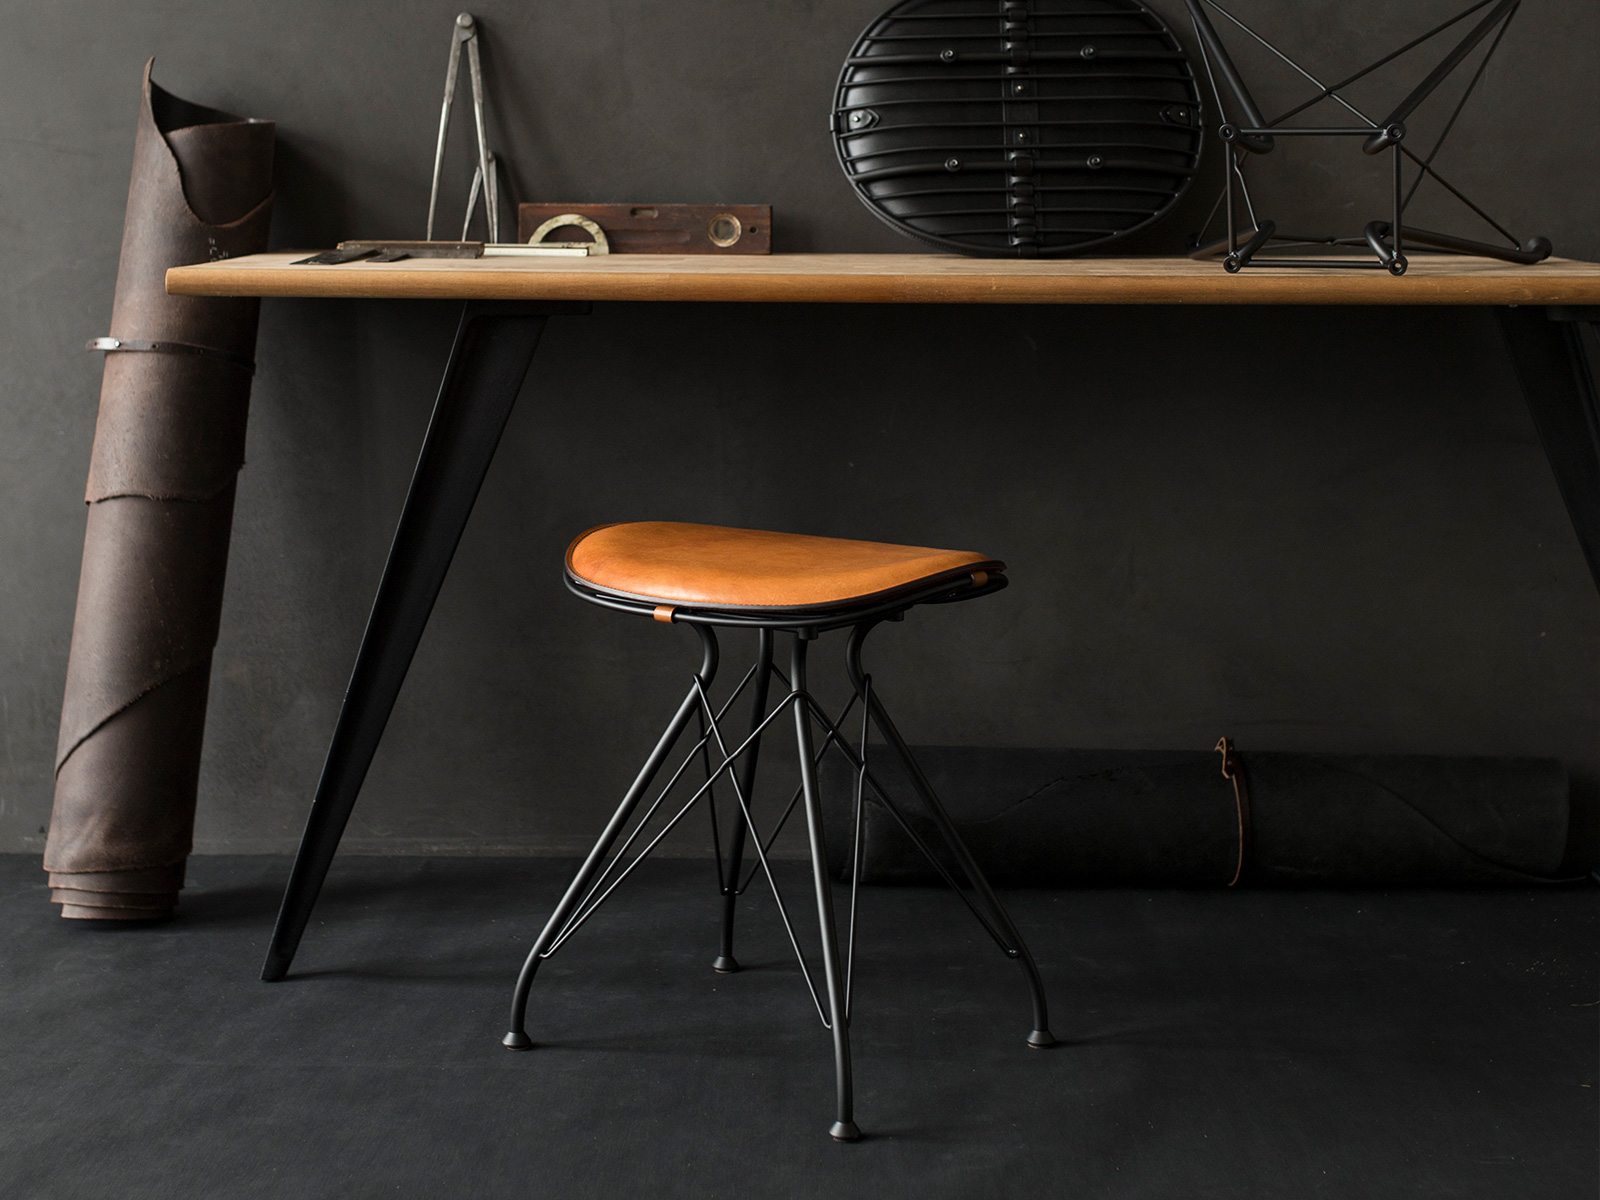 Miraculous Wire Stool Andrewgaddart Wooden Chair Designs For Living Room Andrewgaddartcom